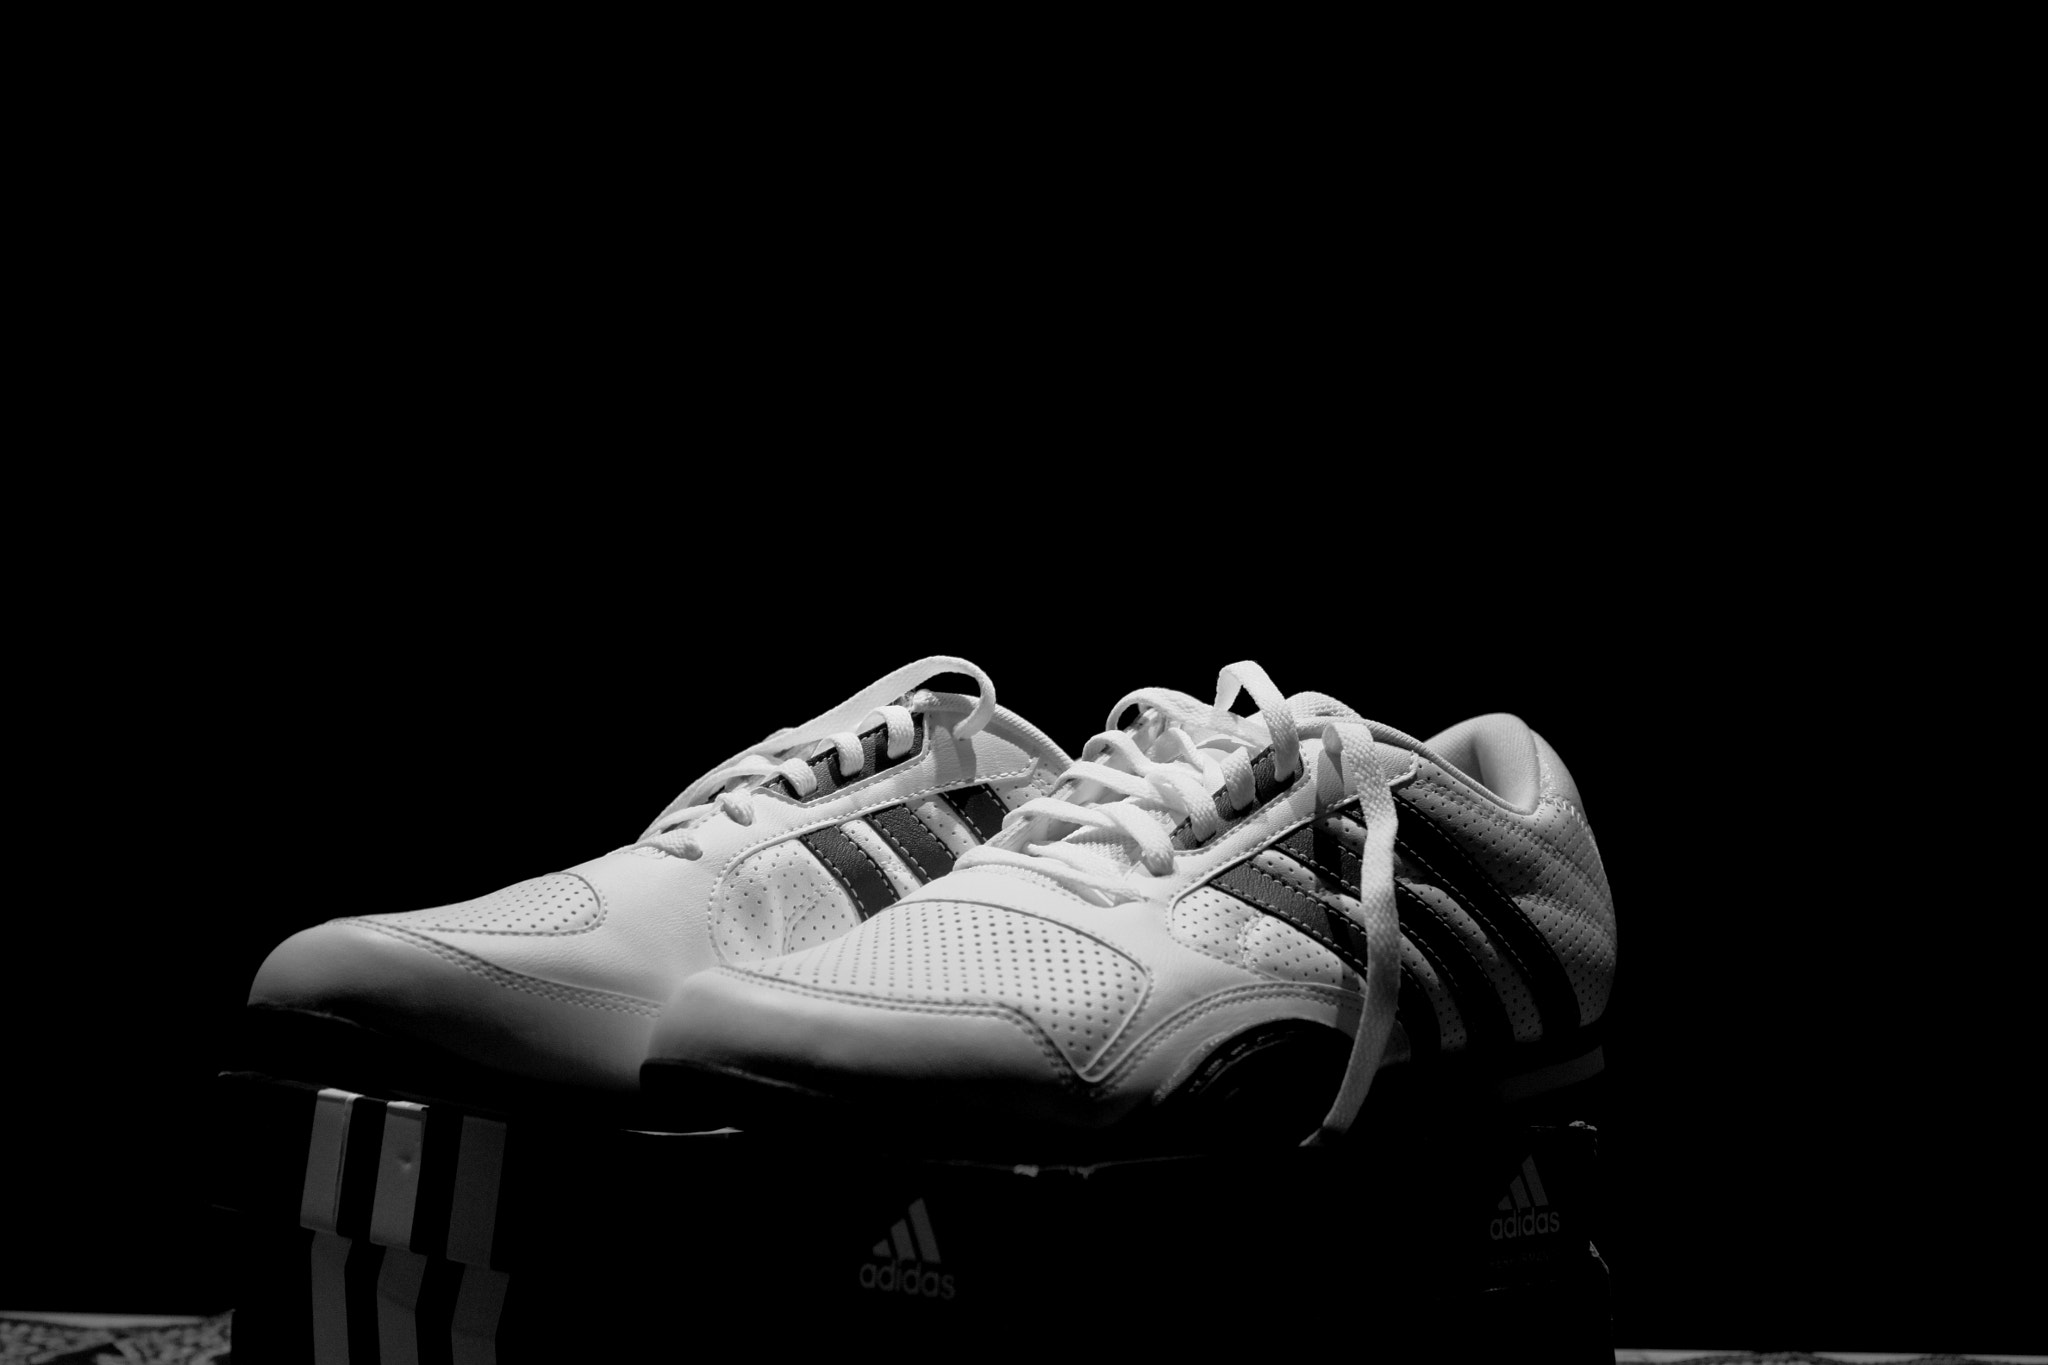 Photograph Adidas by Mohammad Damirchi on 500px